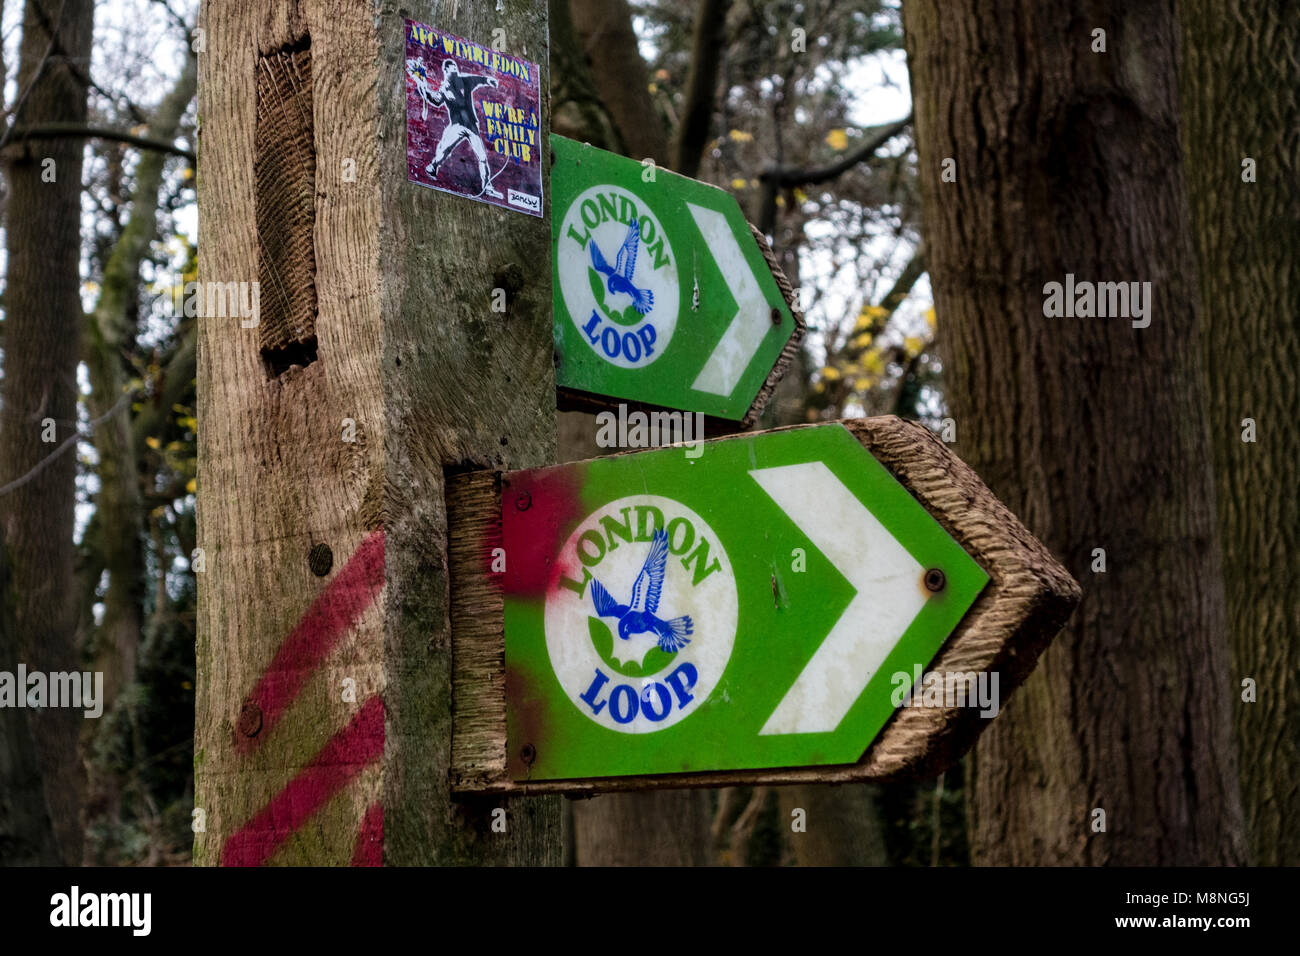 London Loop (London Outer Orbital Path) signpost with a flying kestrel logo.  It is 150 miles circular walk.  UK - Stock Image